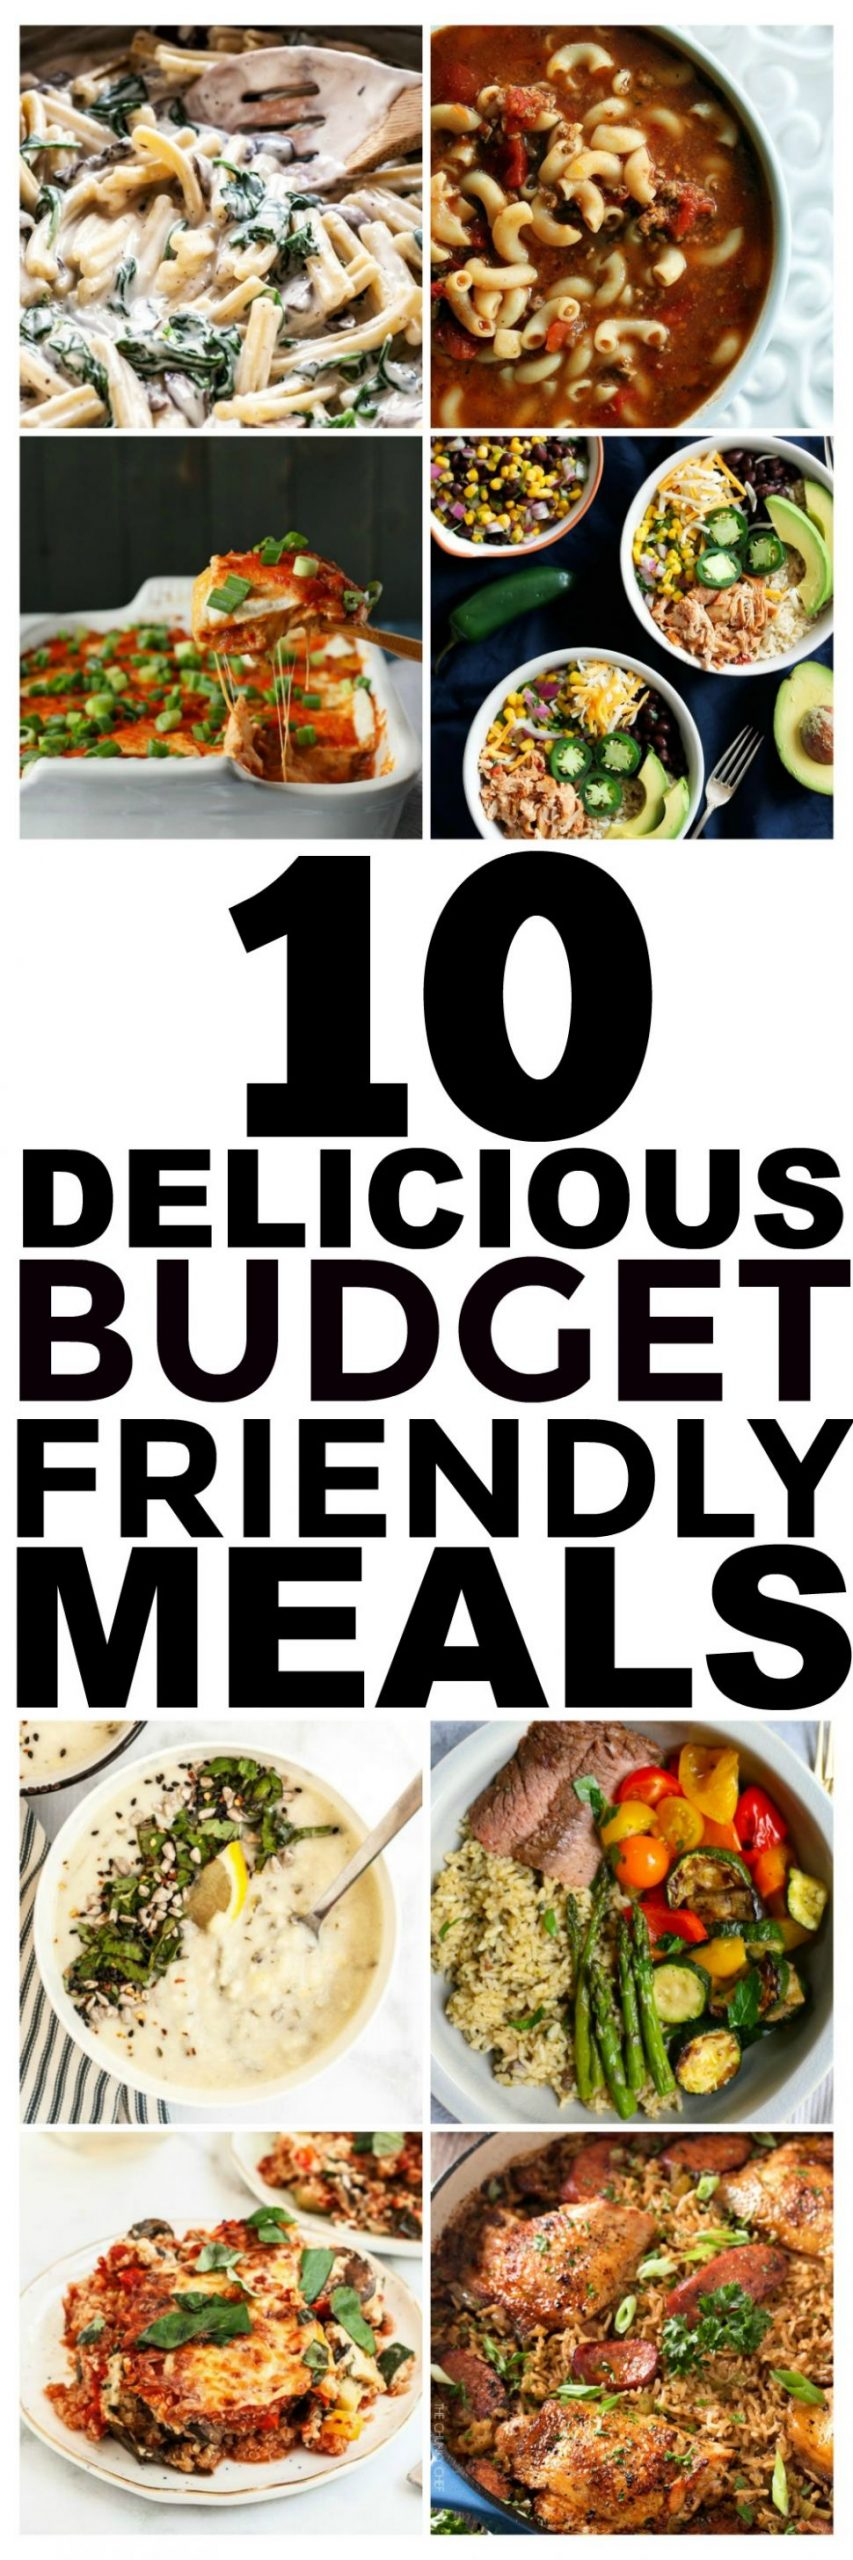 9 Budget Recipes and Cheap Easy Meals You Should Try - Food Recipes Easy And Cheap